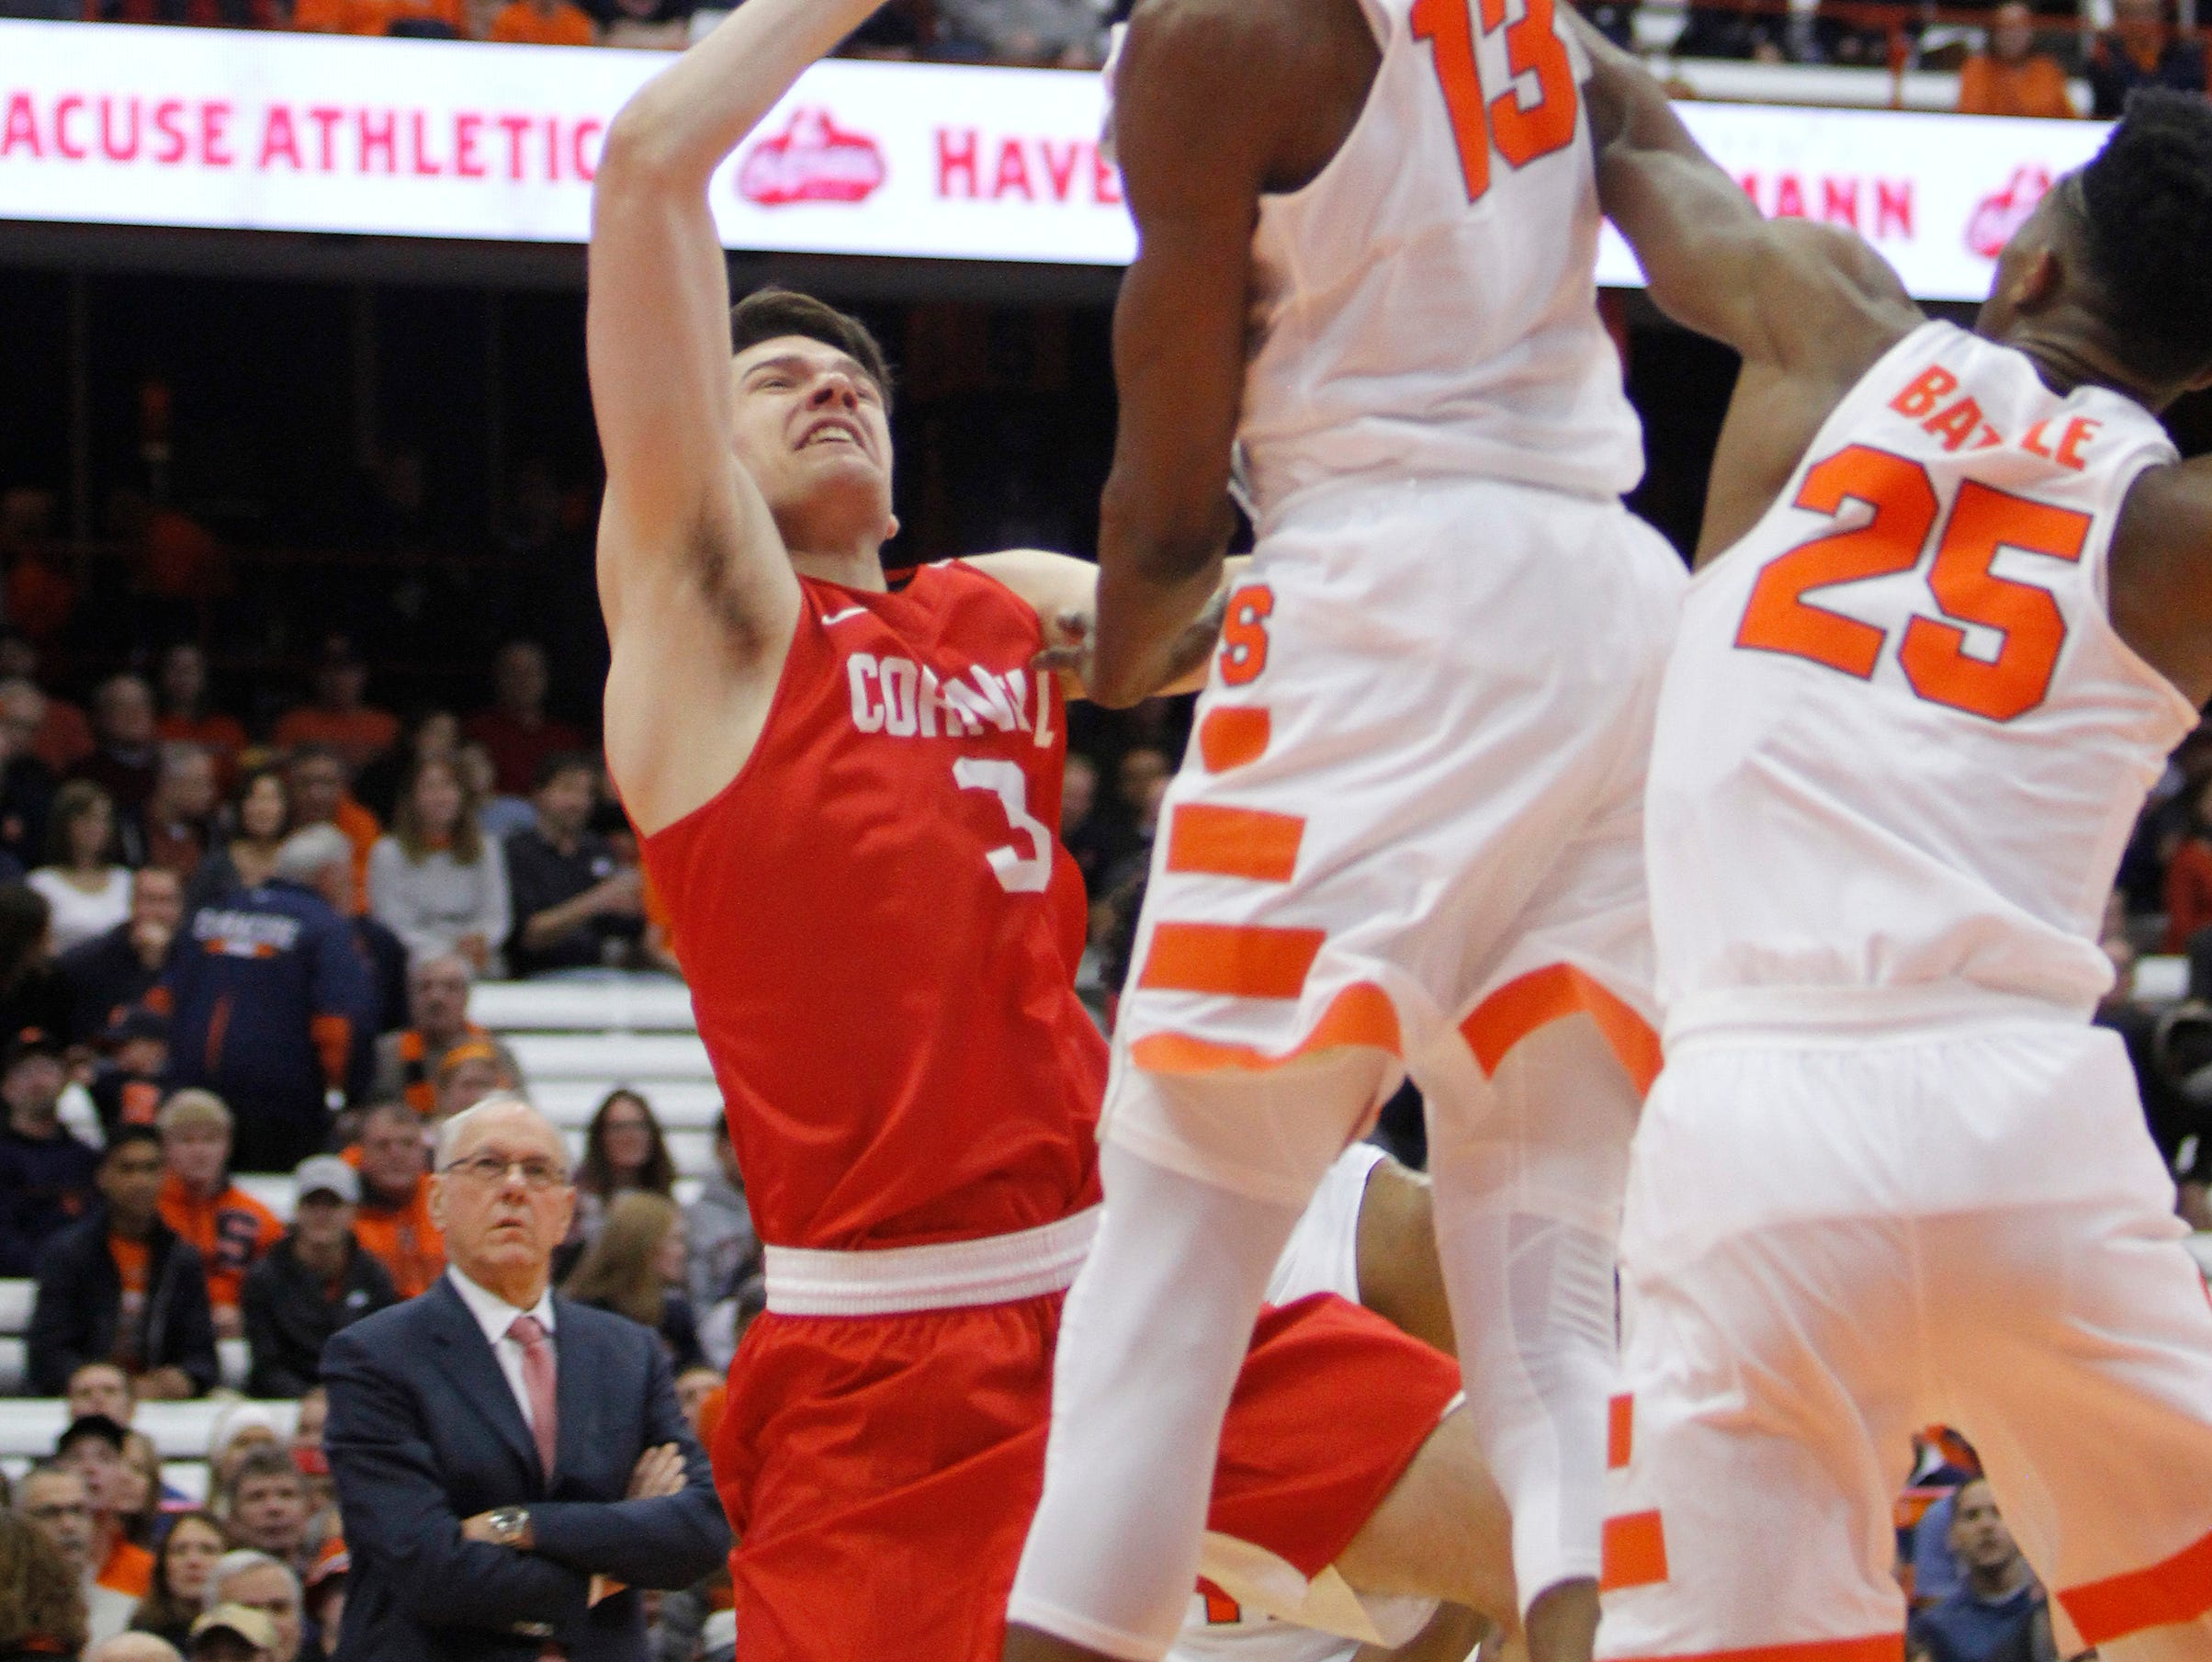 Syracuse head coach Jim Boeheim (3) watches his son, Cornell's Jimmy Boeheim, right, battle for a rebound against Syracuse's Paschal Chukwu and Tyus Battle in the first half of an NCAA college basketball game in Syracuse, N.Y., Friday, Nov. 10, 2017. (AP Photo/Nick Lisi)